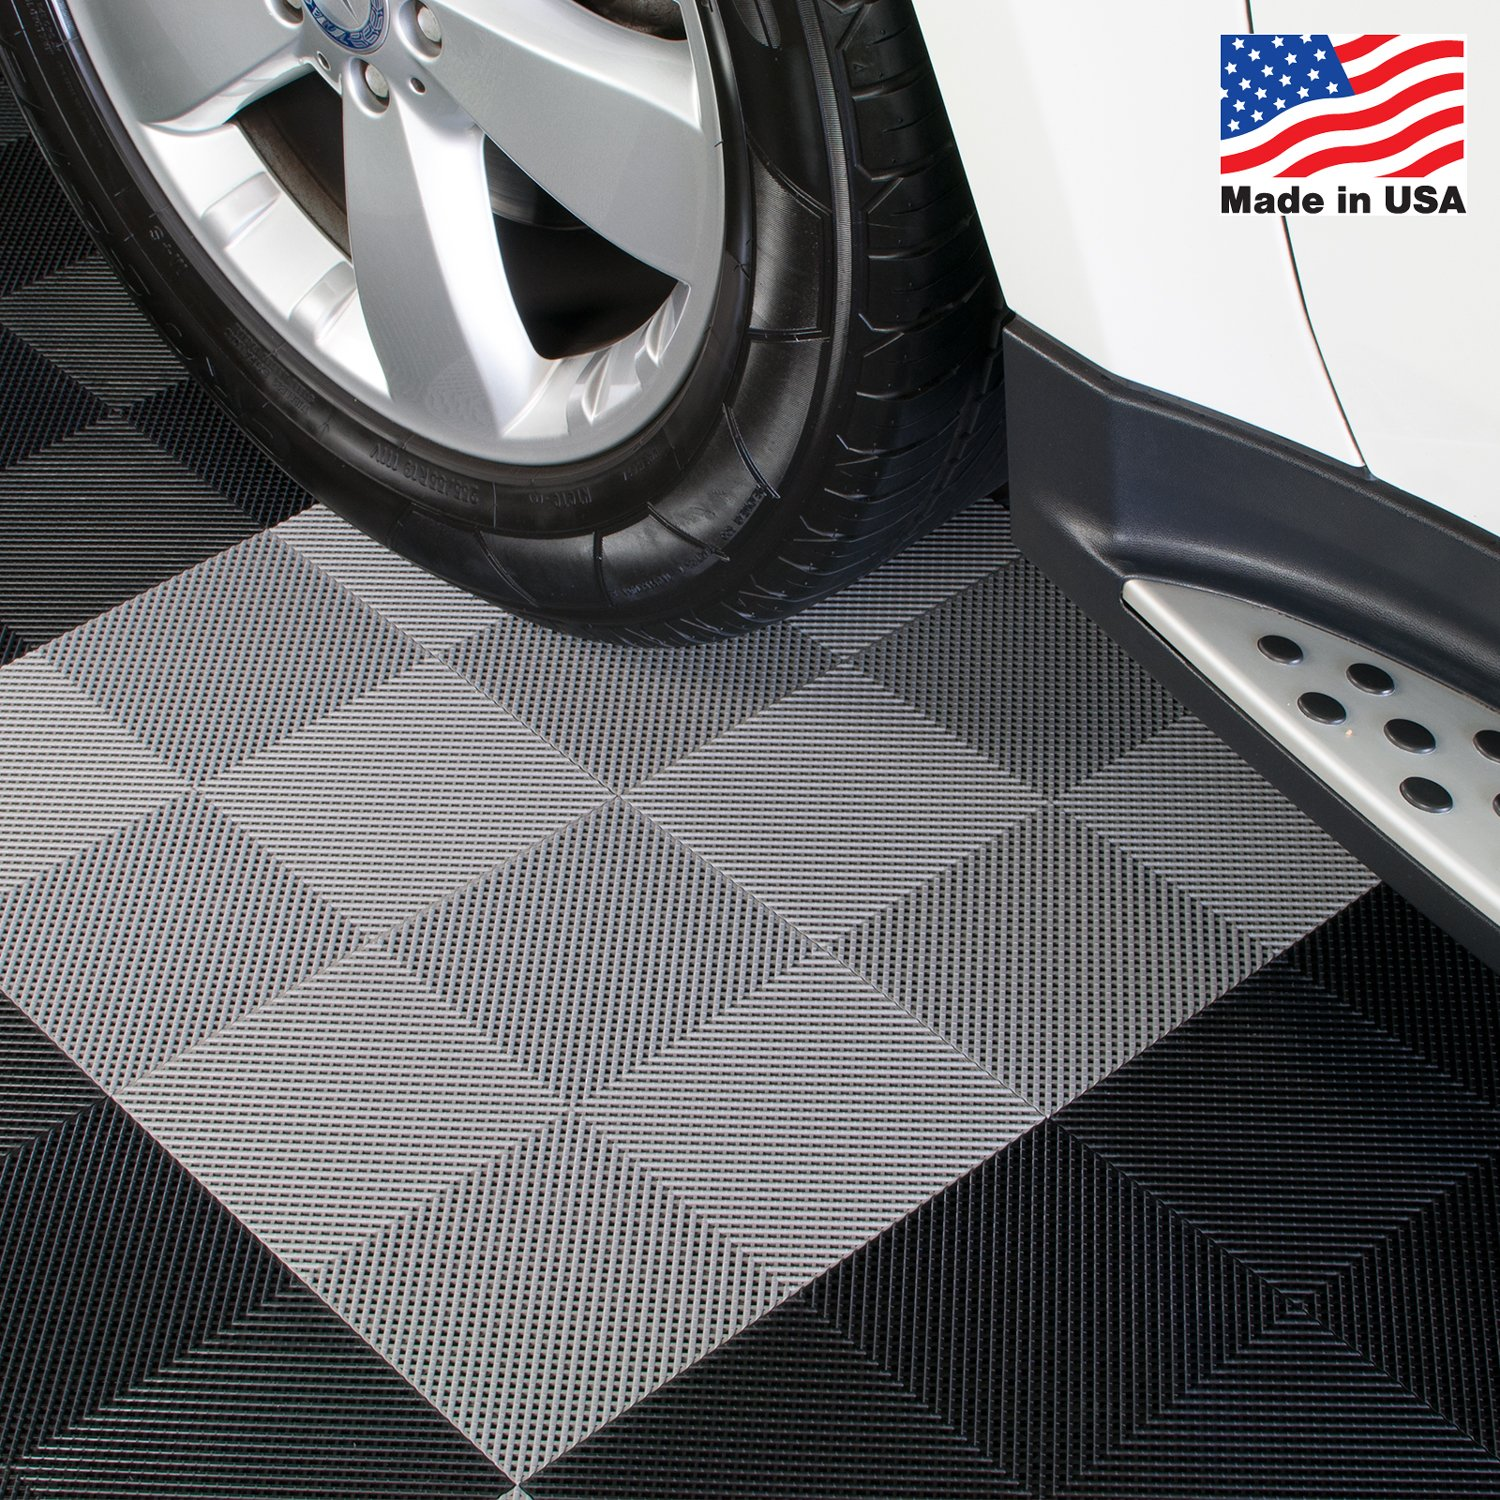 BlockTile B2US4630 Deck and Patio Flooring Interlocking Tiles Perforated Pack, Gray, 30-Pack by BlockTile